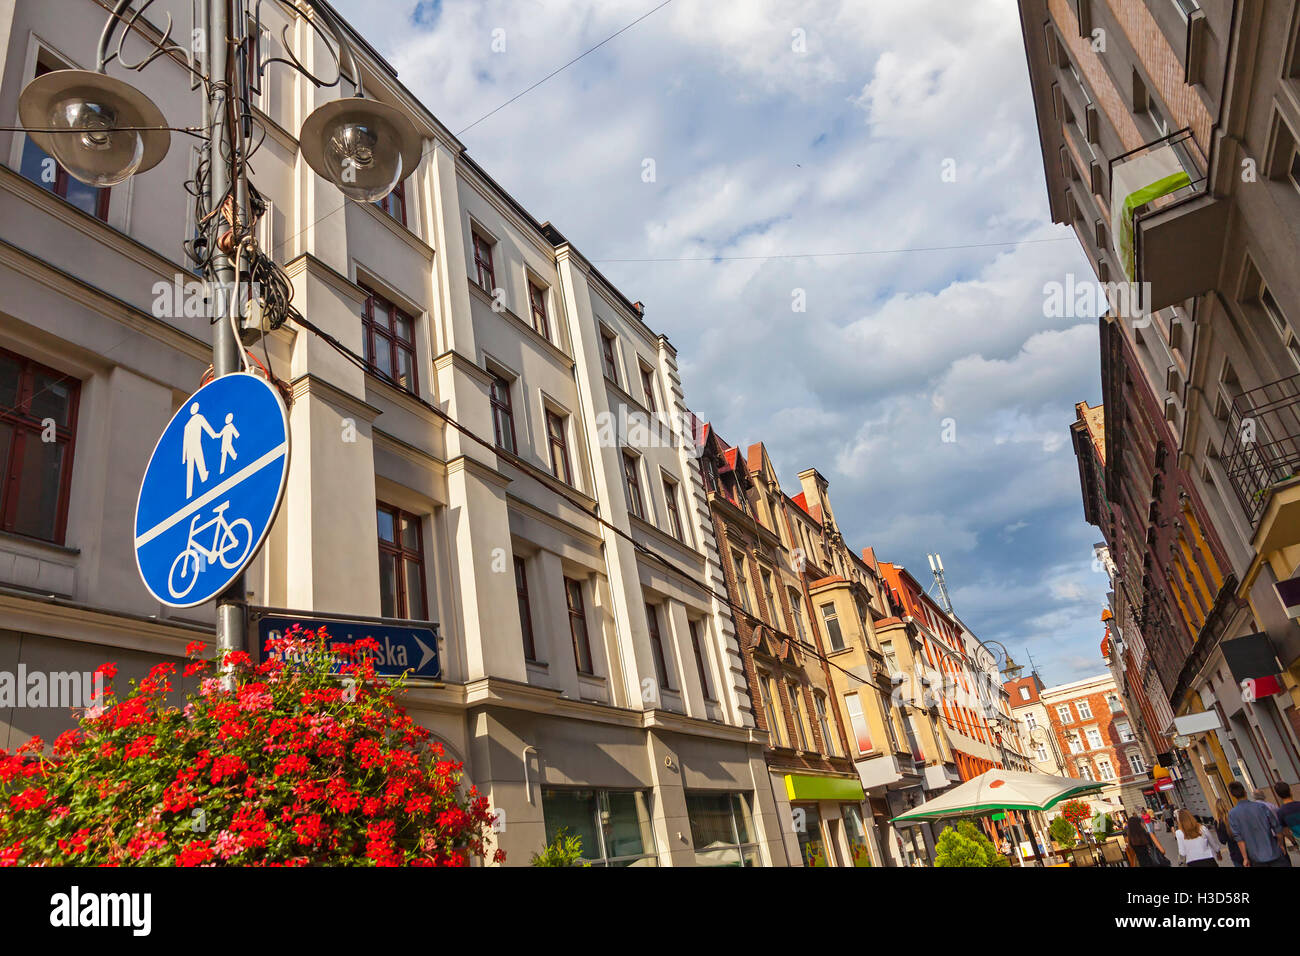 On the streets of Katowice city,  Silesian Metropolis, Poland - Stock Image